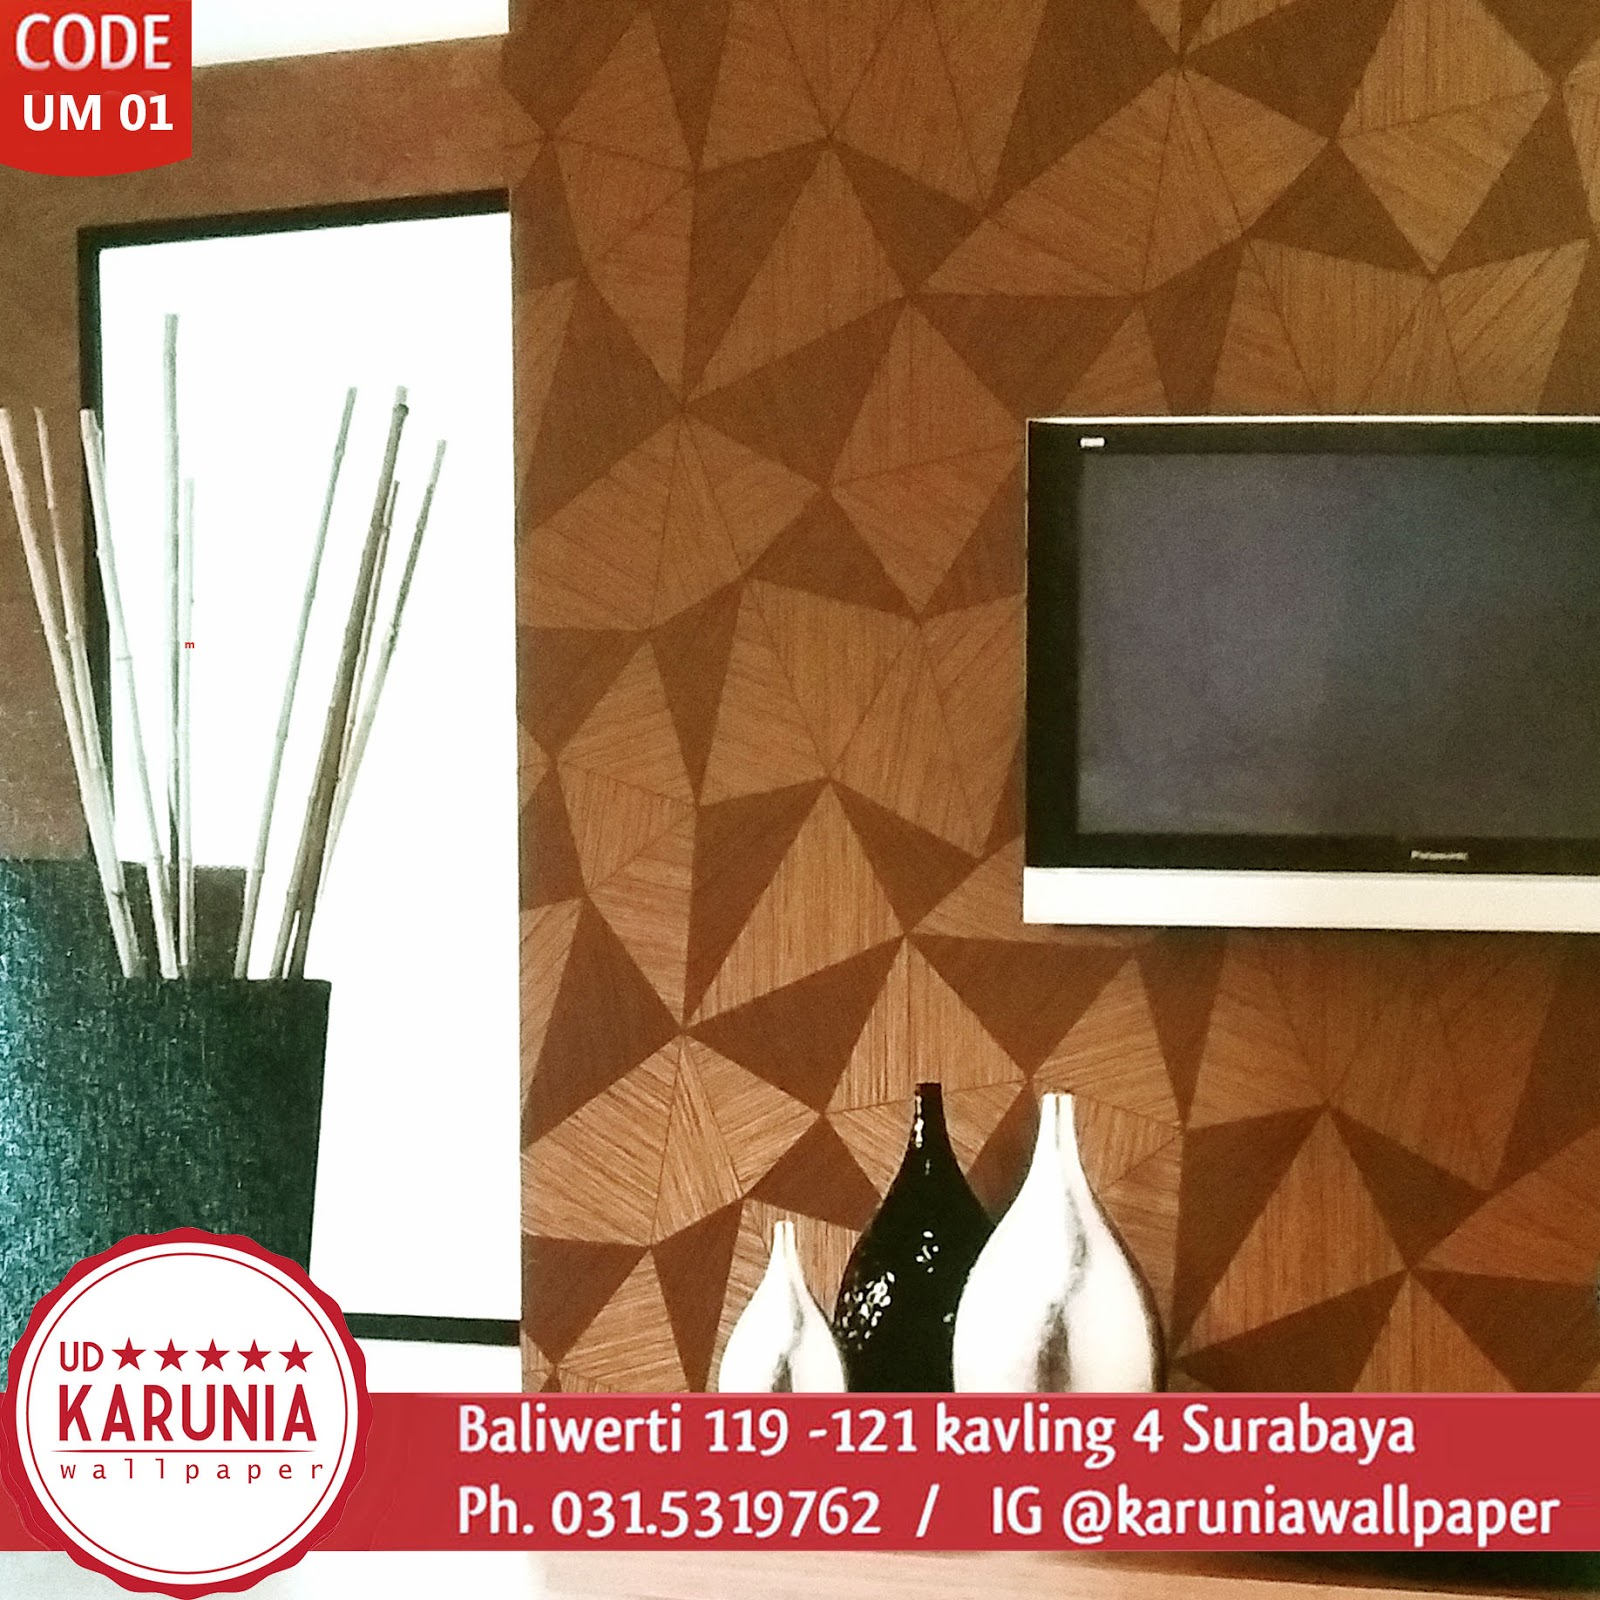 jual wallpaper 3d surabaaya